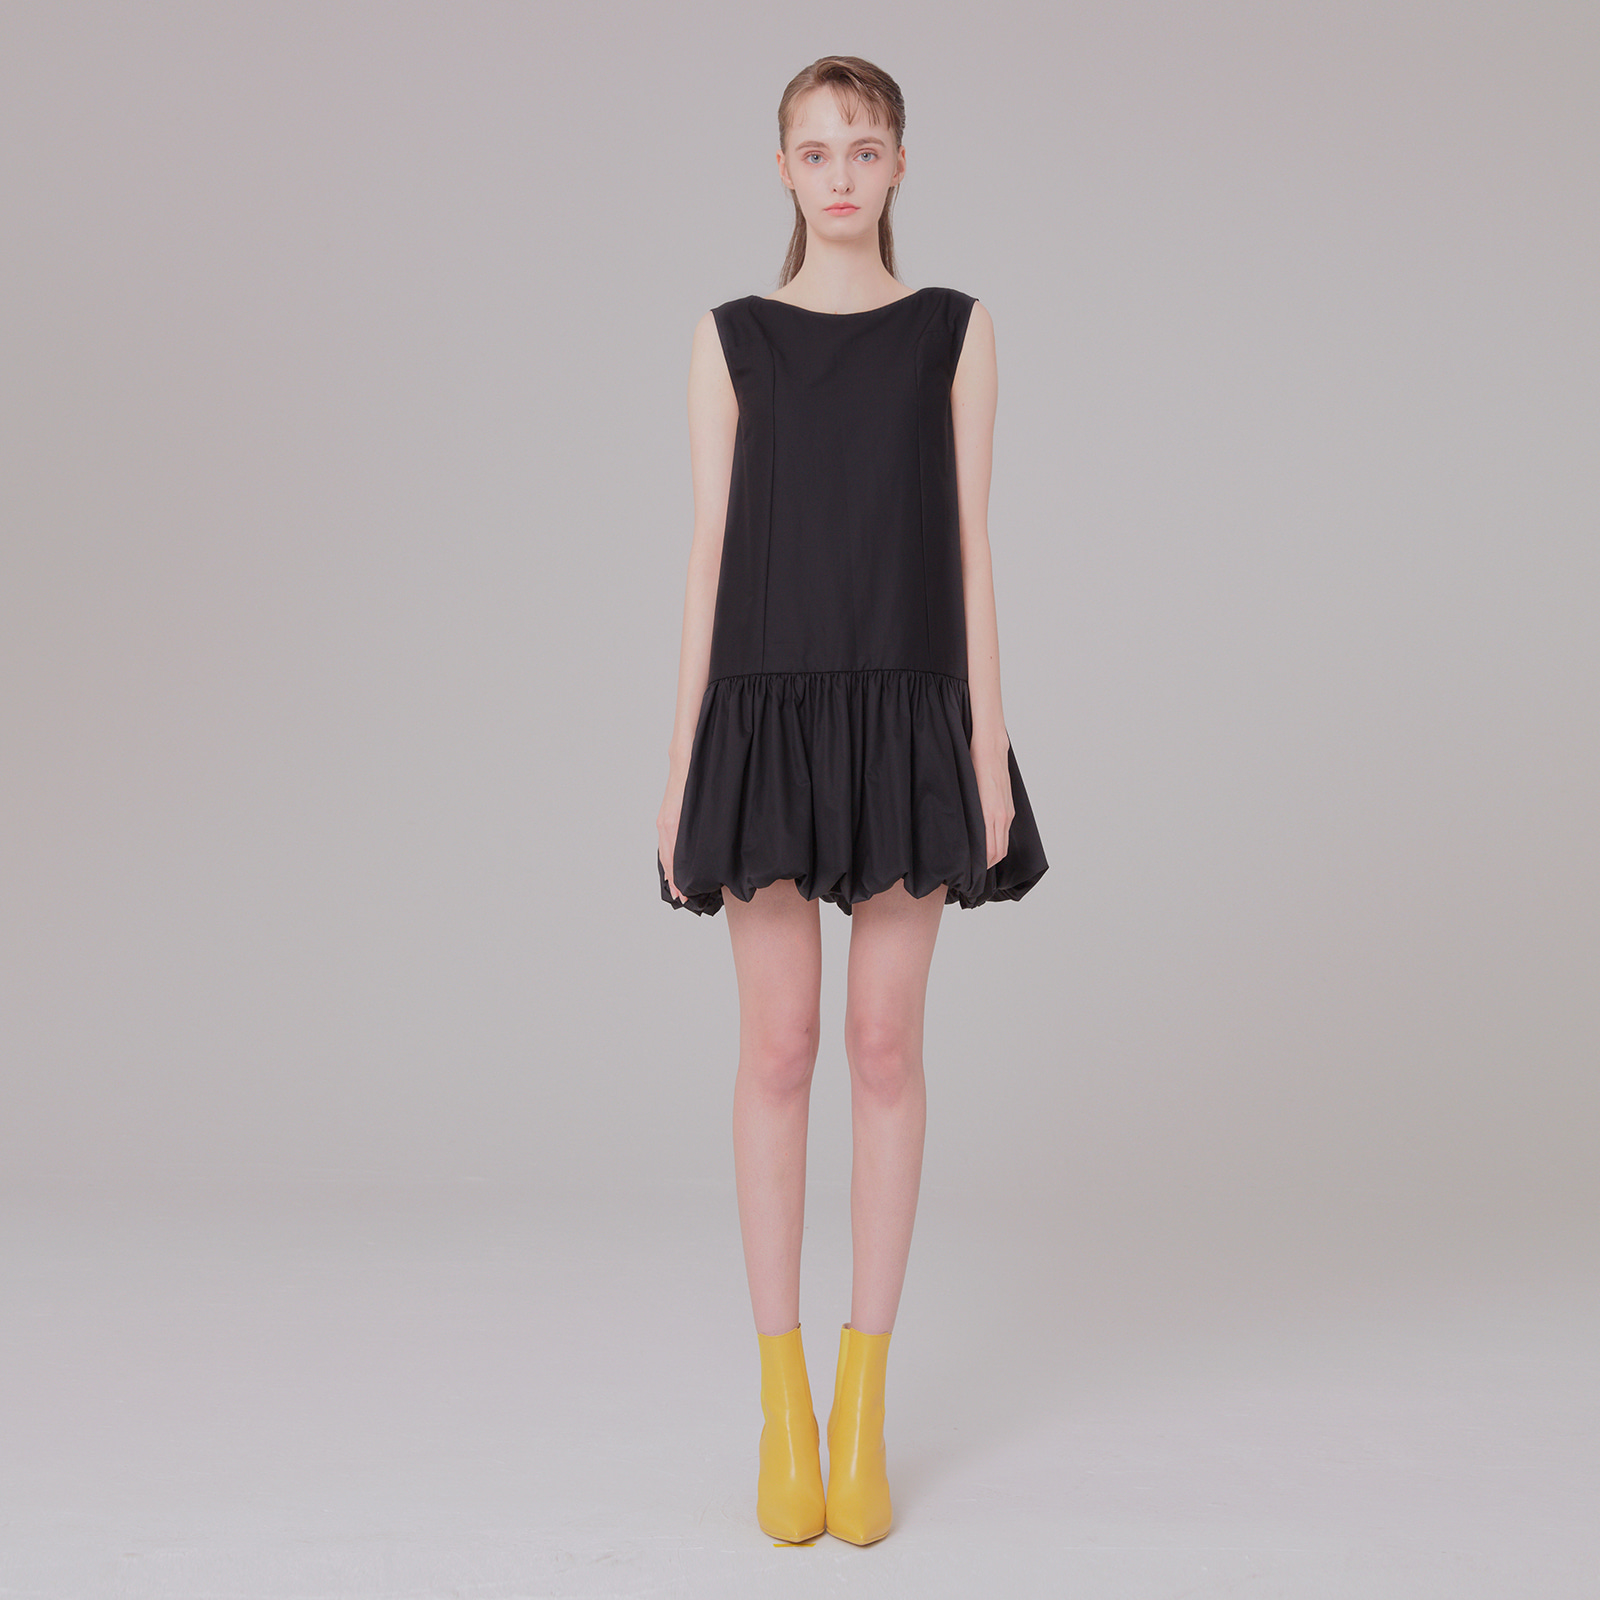 [5/29 예약배송] Ribbon detail dress 001 black